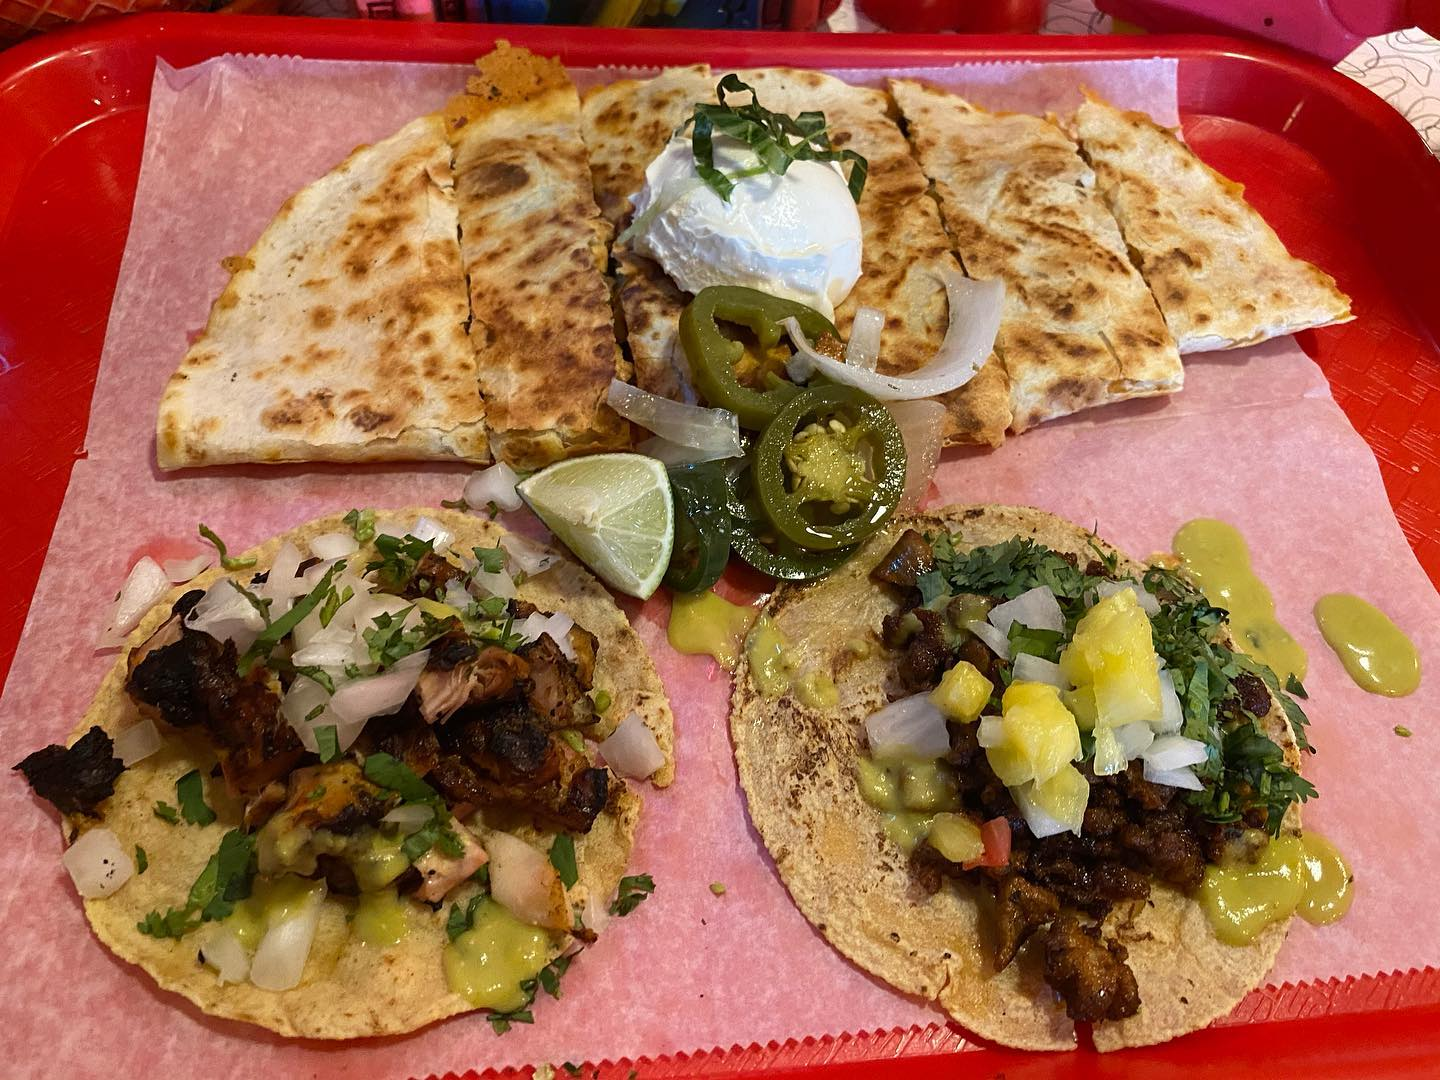 two beef tacos on a plate and a quesadilla